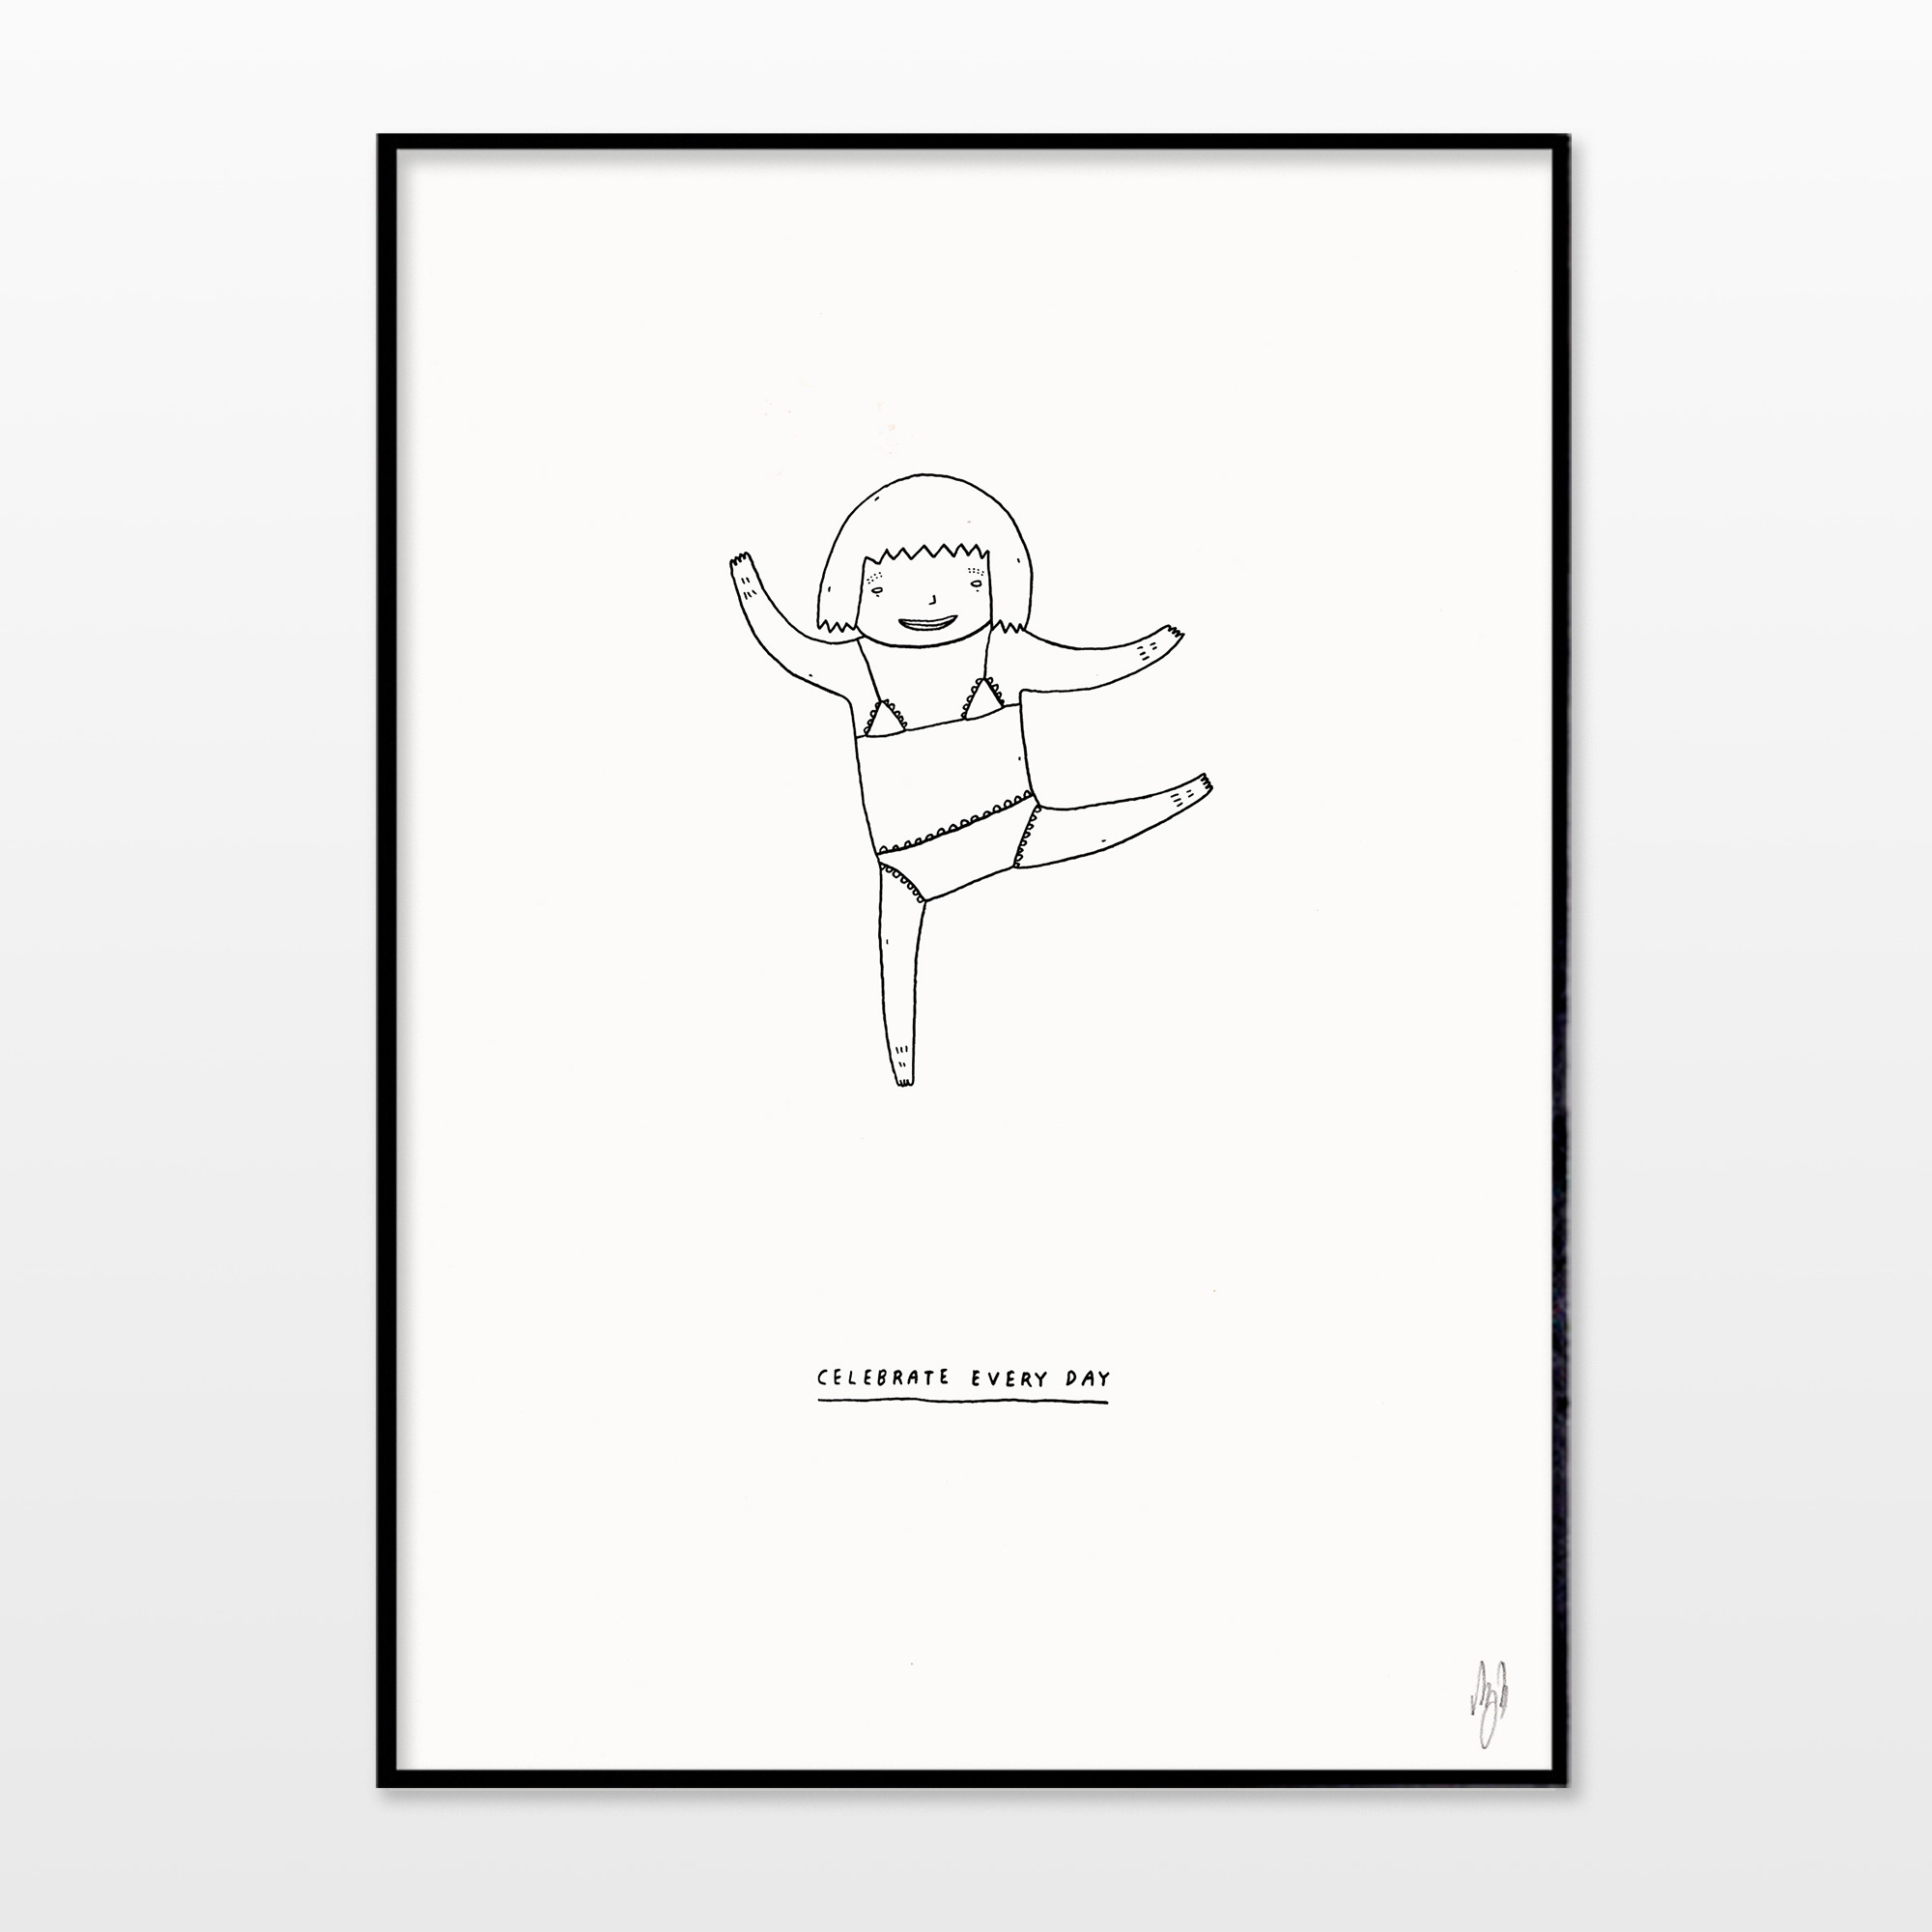 posters-prints, giclee-print, family-friendly, graphical, illustrative, pop, cartoons, children, humor, black, white, artliner, paper, black-and-white, copenhagen, cute, decorative, design, interior, interior-design, love, modern, modern-art, nordic, posters, scandinavien, street-art, Buy original high quality art. Paintings, drawings, limited edition prints & posters by talented artists.